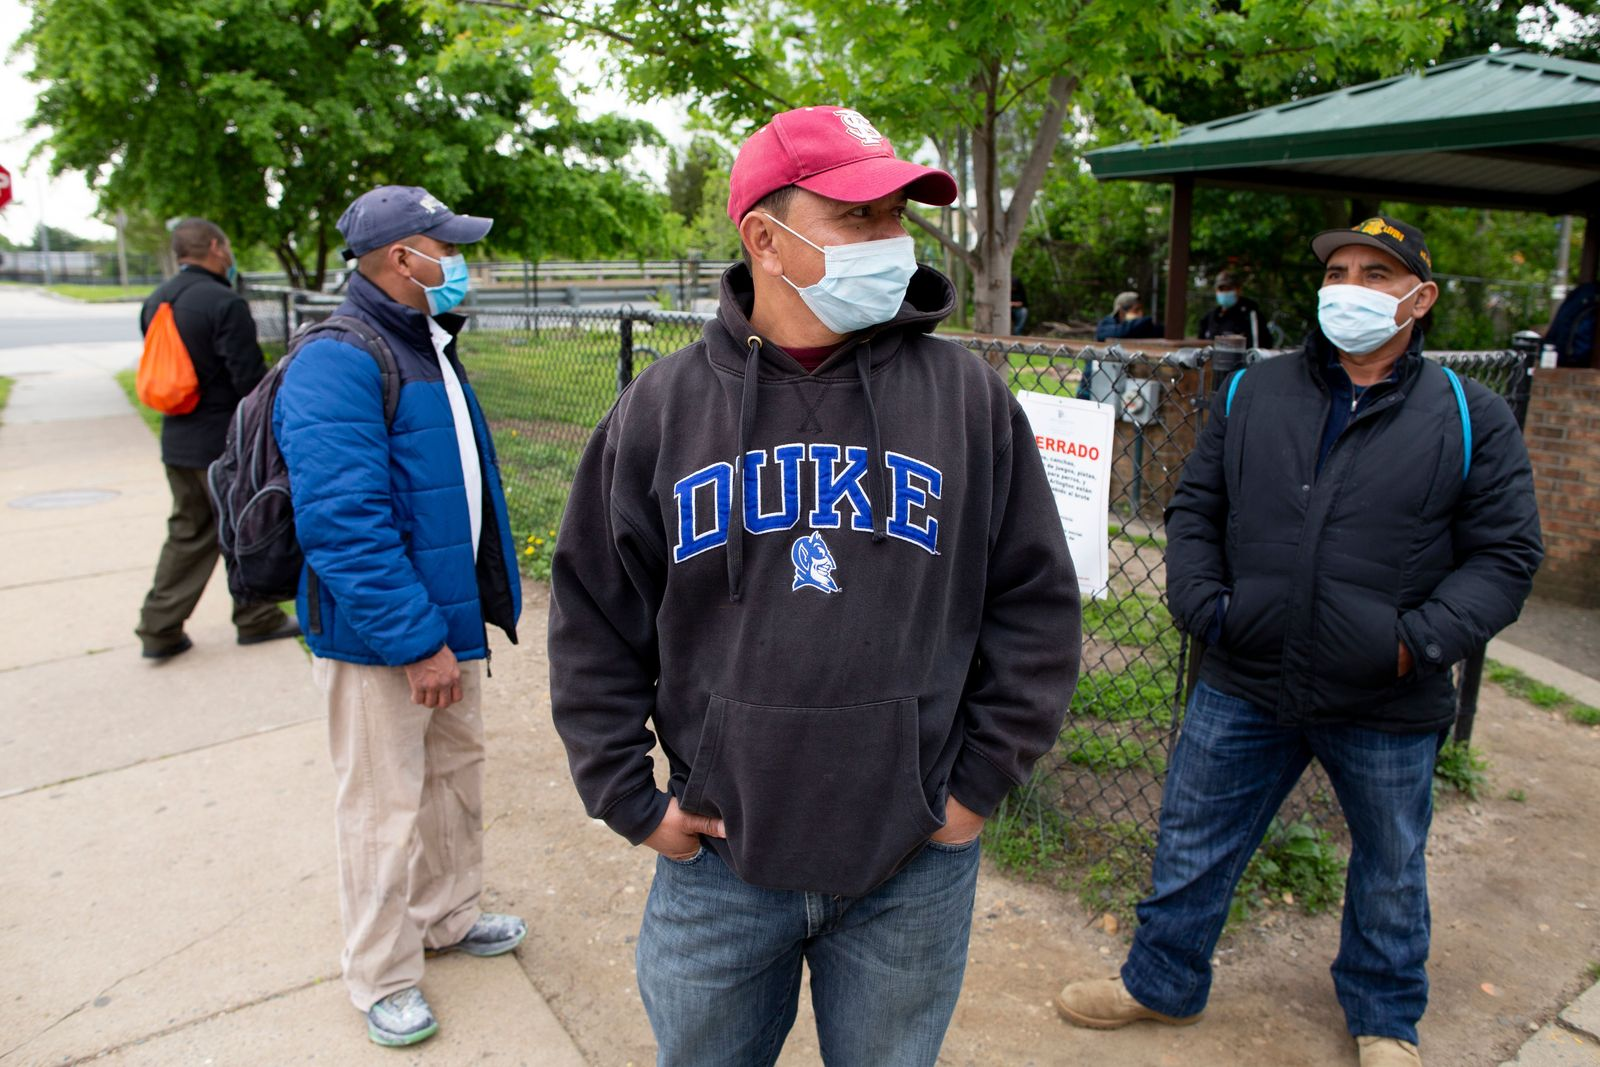 Day laborers wait for jobs at a hiring site at a park in Shirlington, Virginia, USA - 08 May 2020